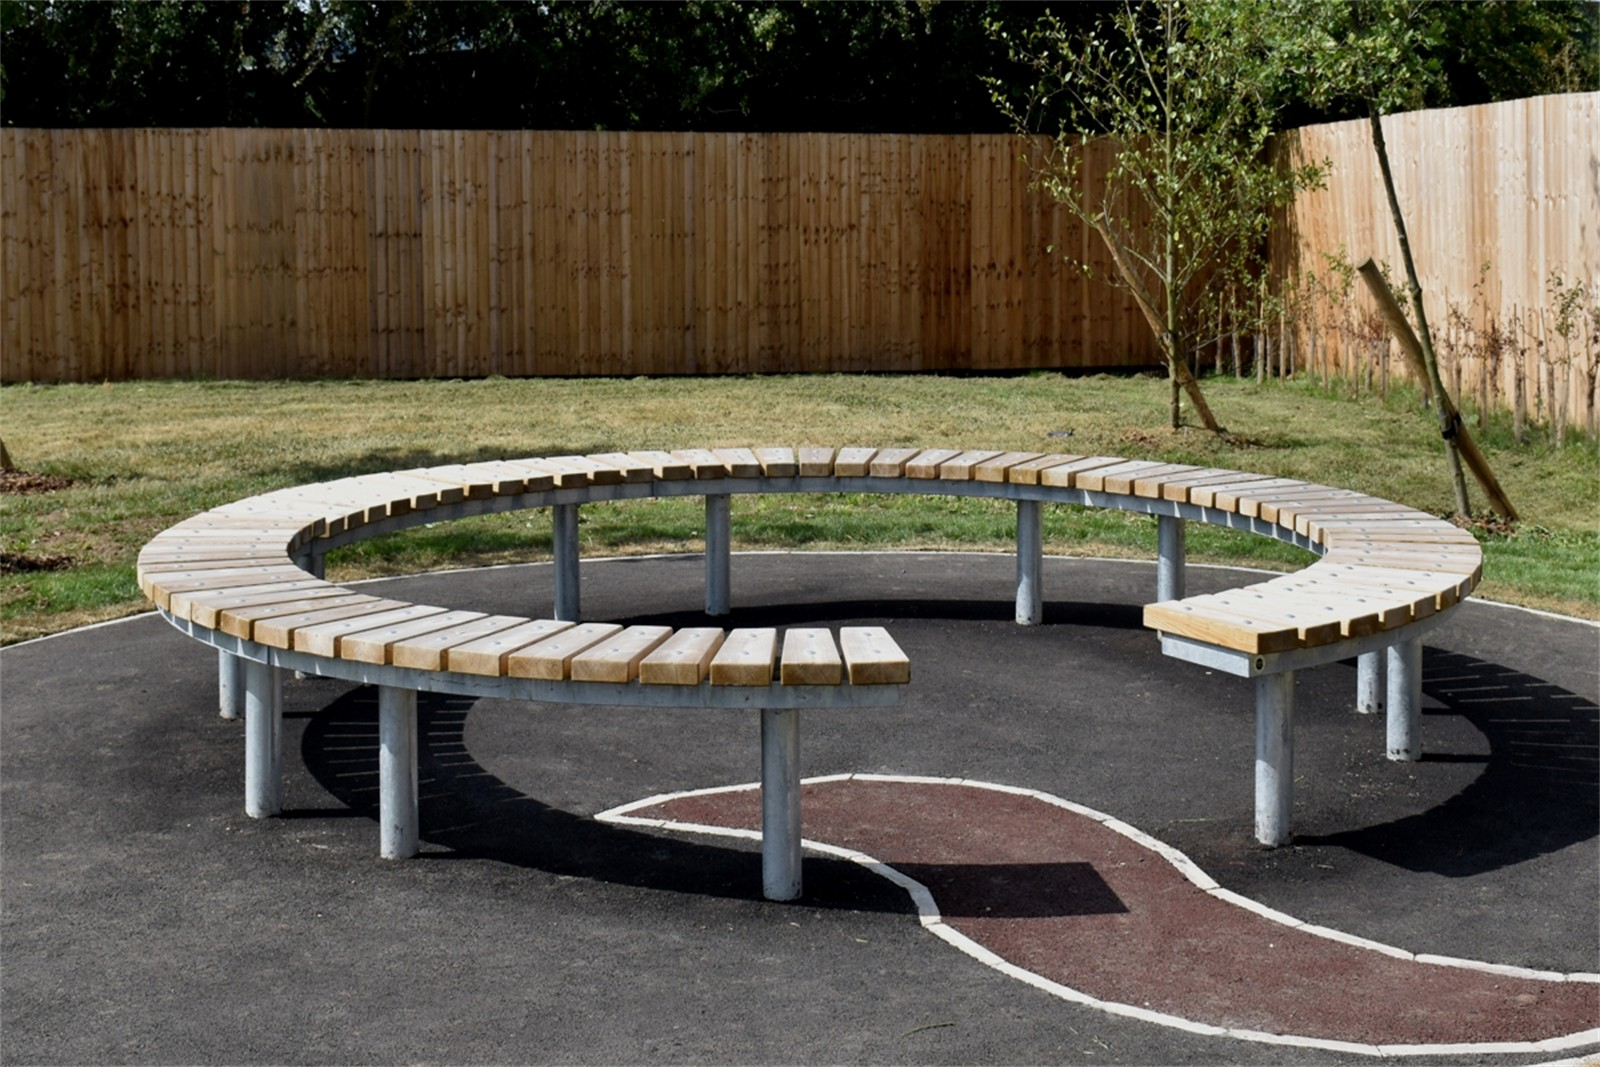 76ssp41 - Spalding long circular bench